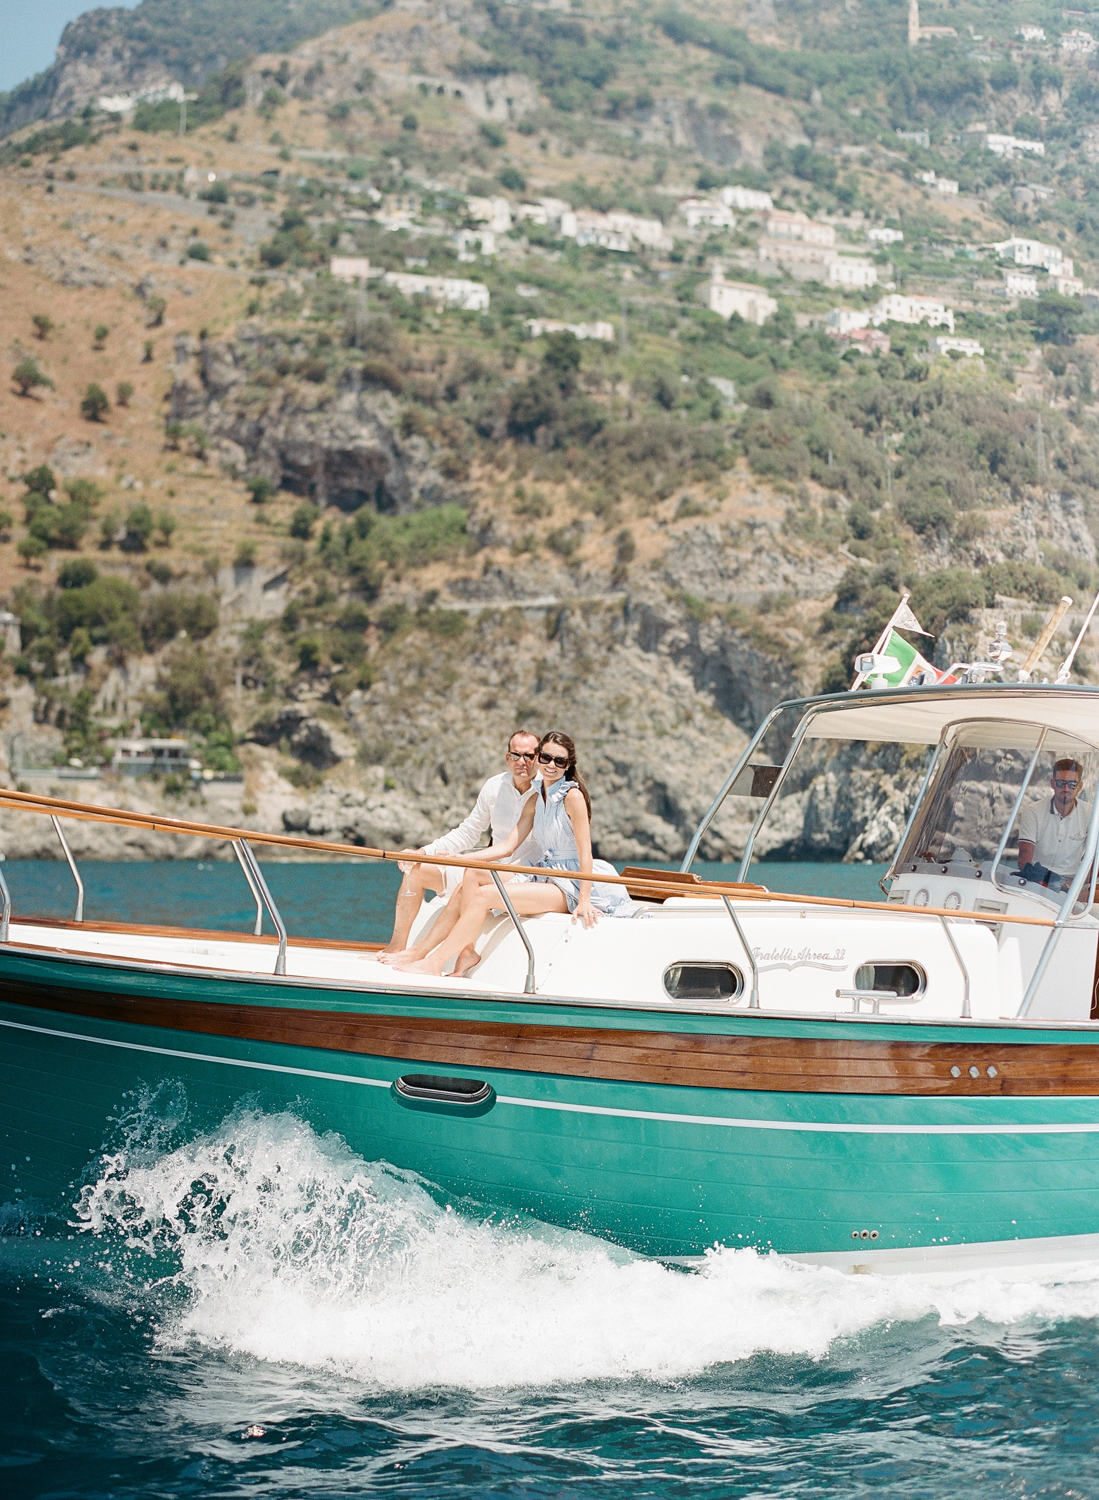 A couple sits on a yacht going to Positano, in the Amalfi Coast, Italy; Sylvie Gl Photography